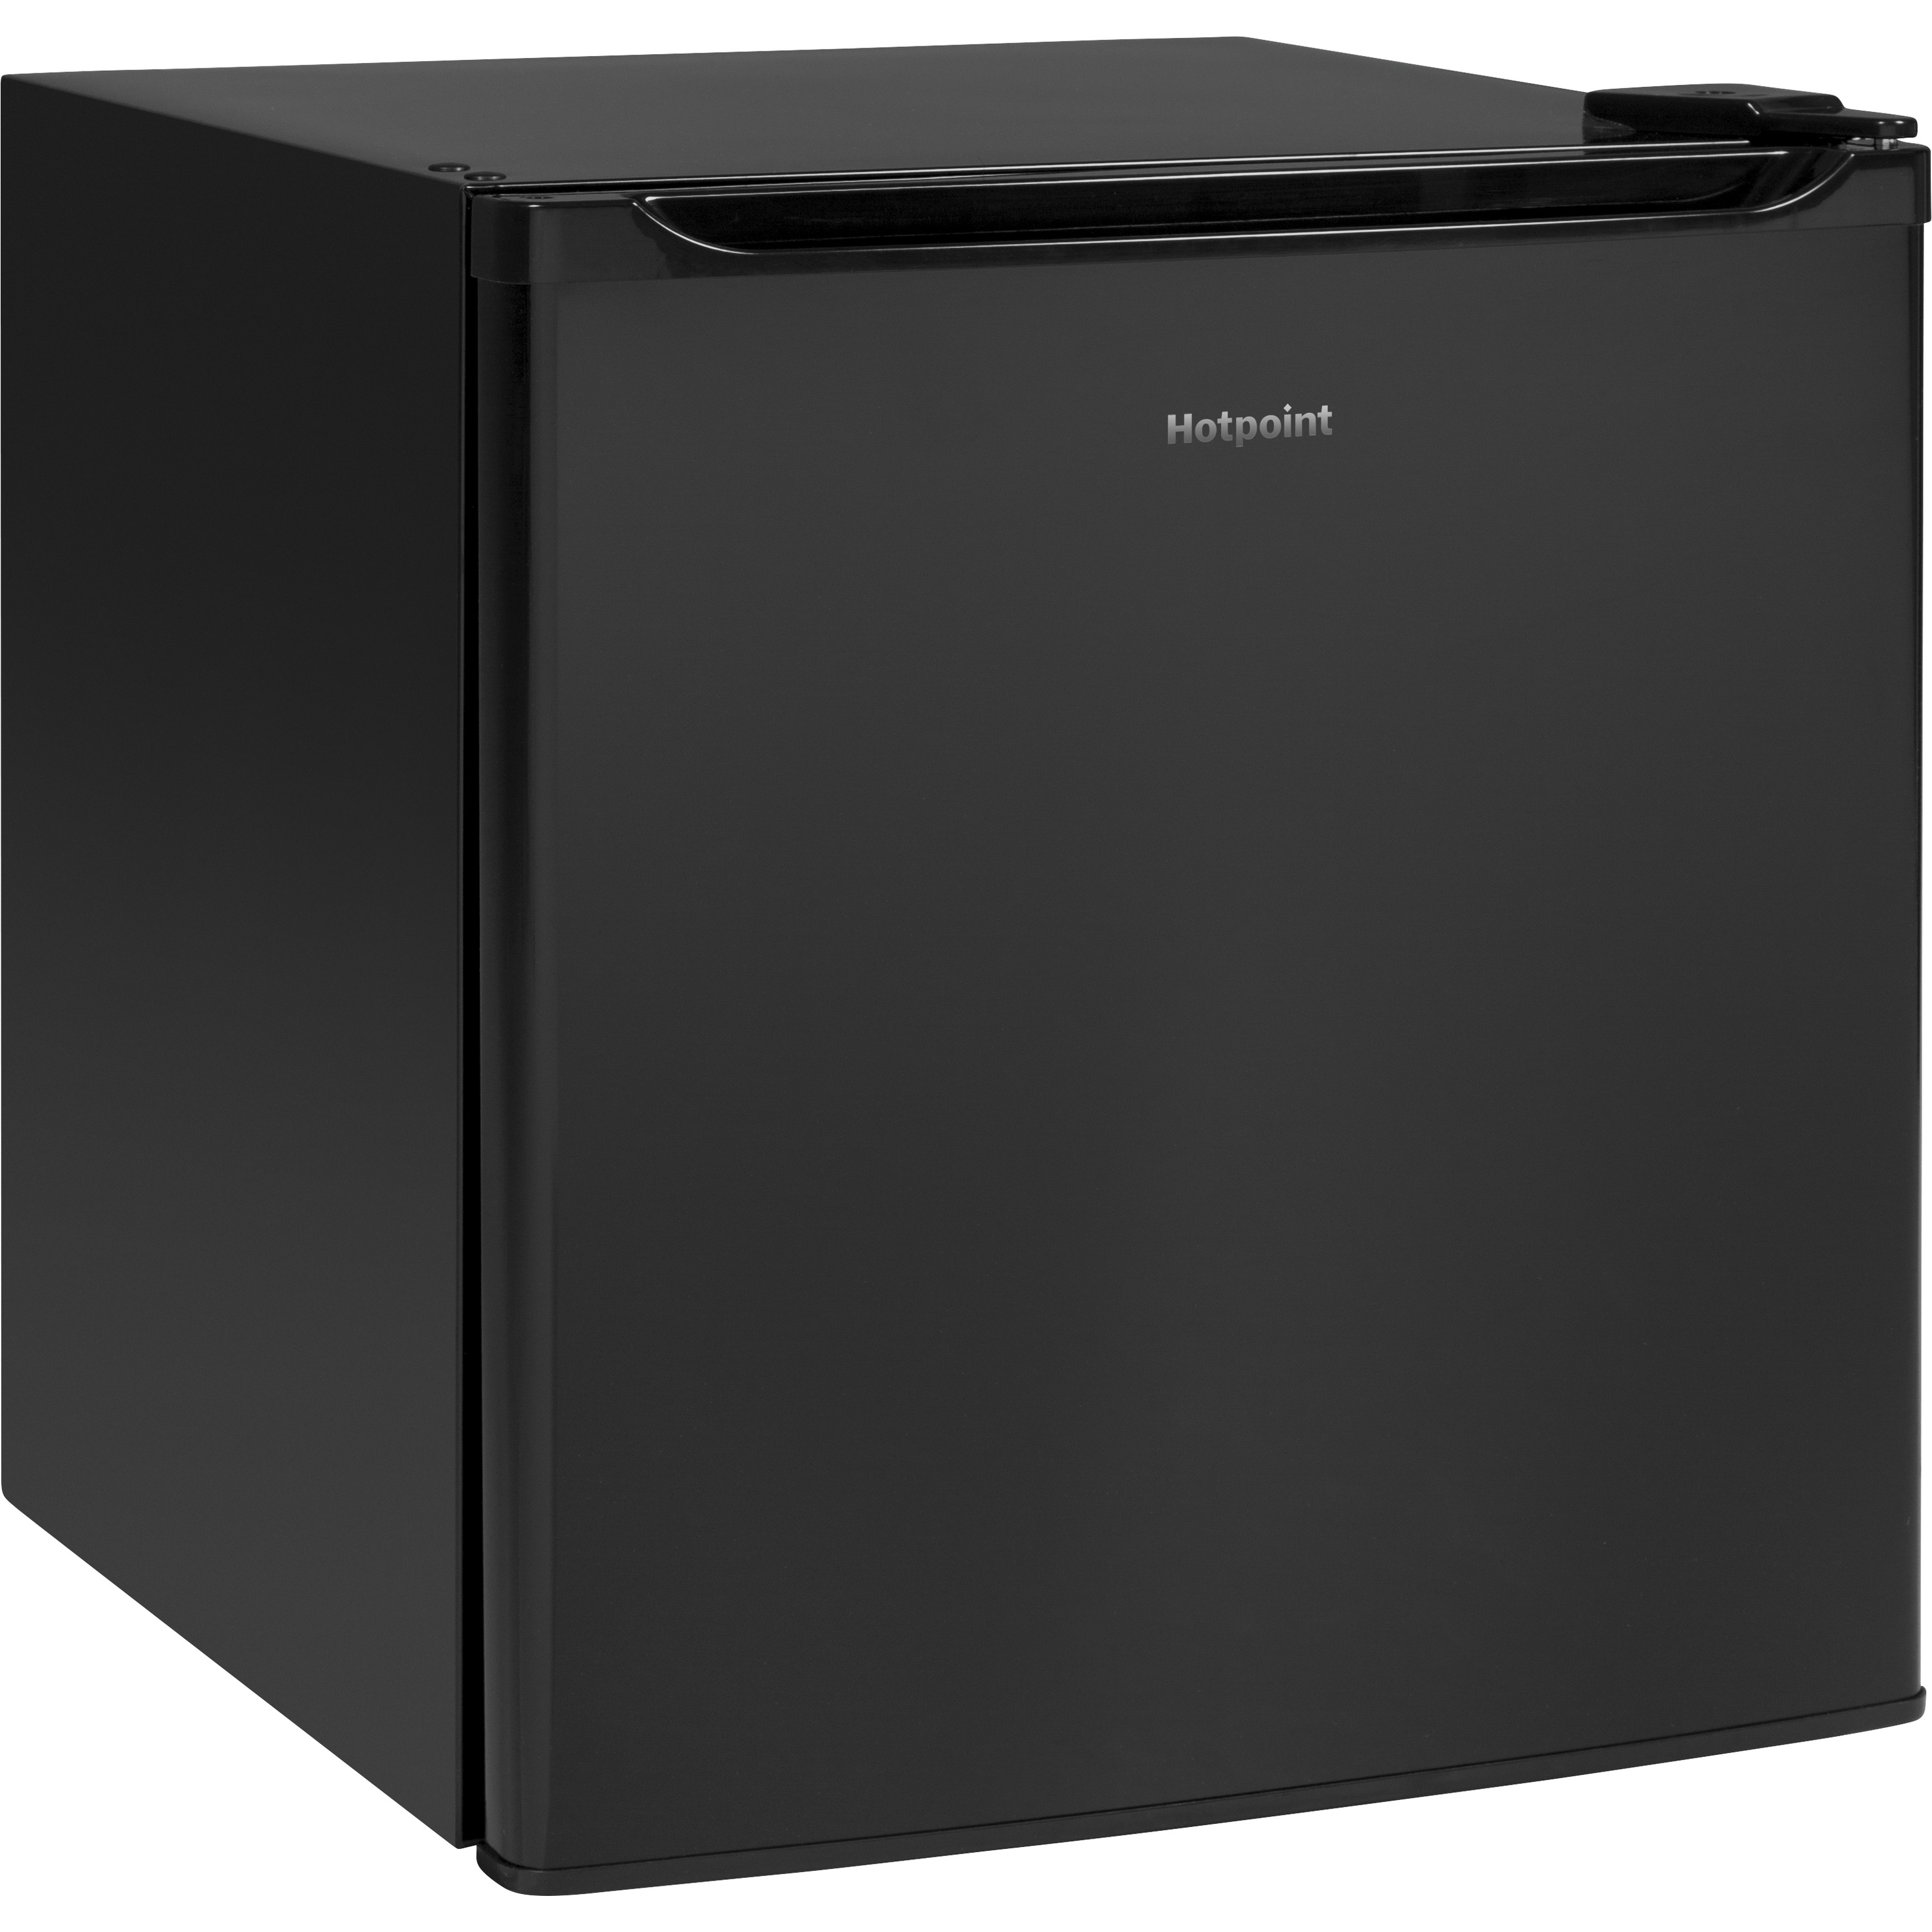 Model: HME02GGMBB | Hotpoint Hotpoint® 1.7 cu. ft. ENERGY STAR® Qualified Compact Refrigerator